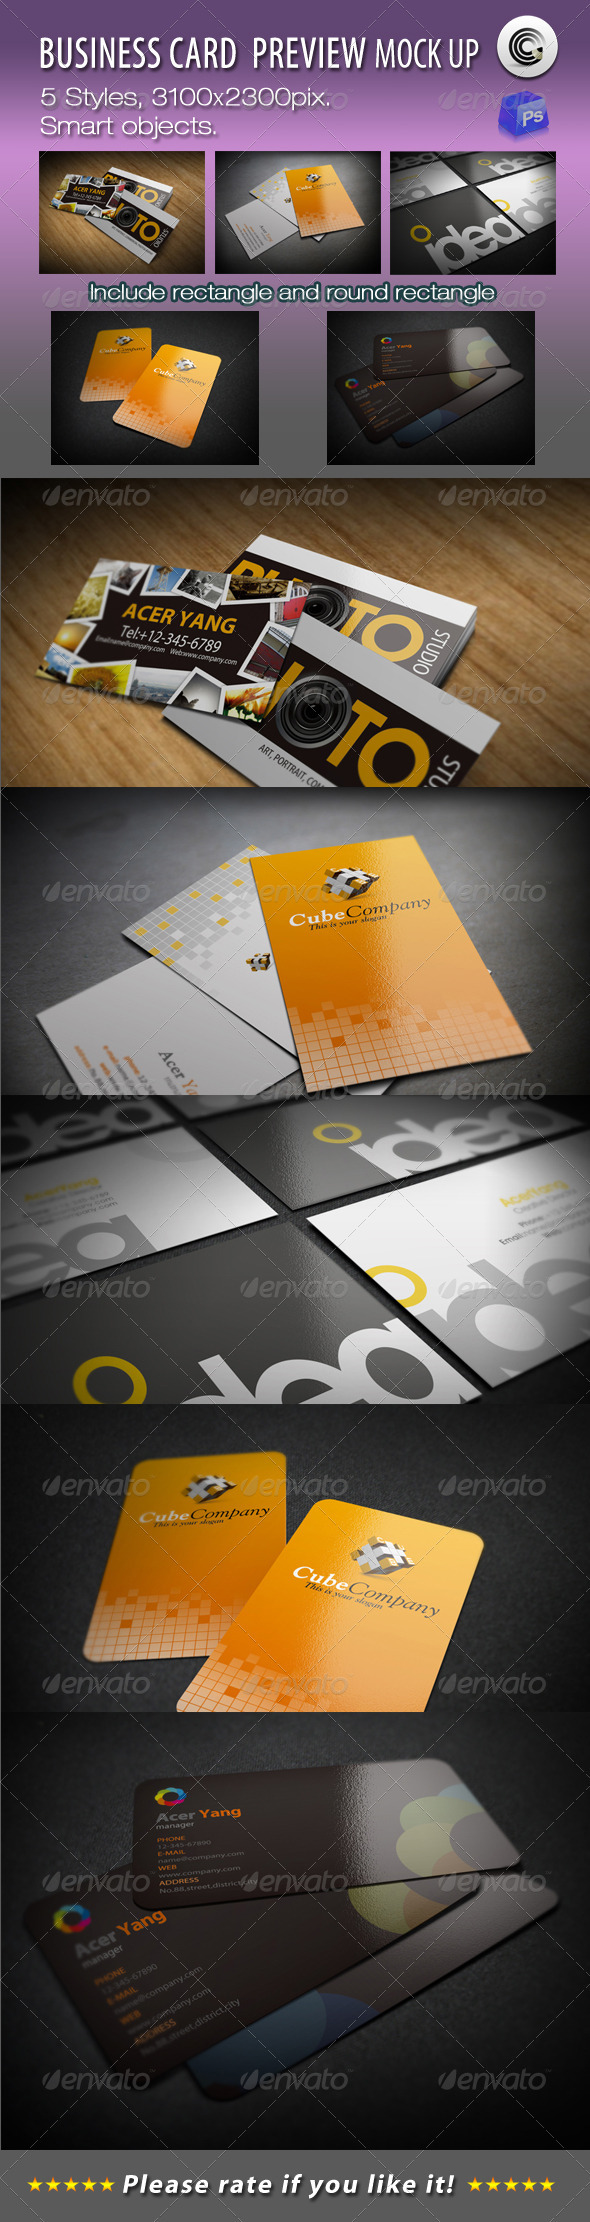 5 Styles Business Card Preview Mock-ups - Business Cards Print